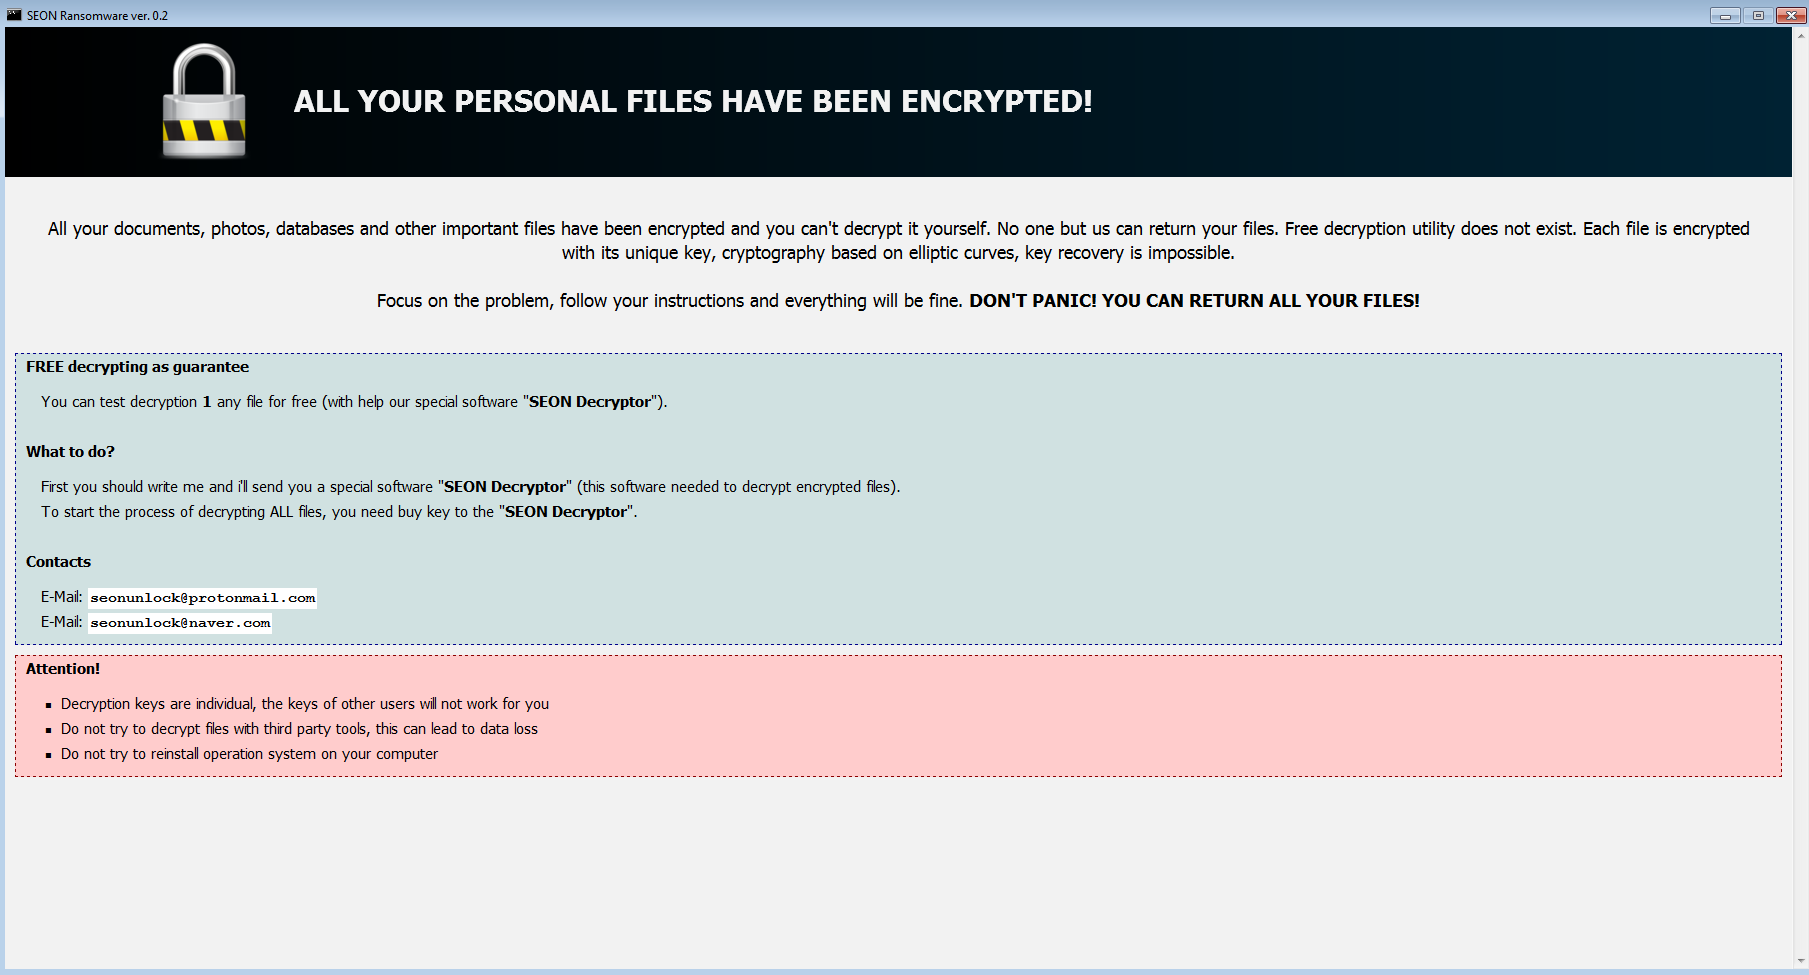 New ransomware infections are the worst drive-by attacks in